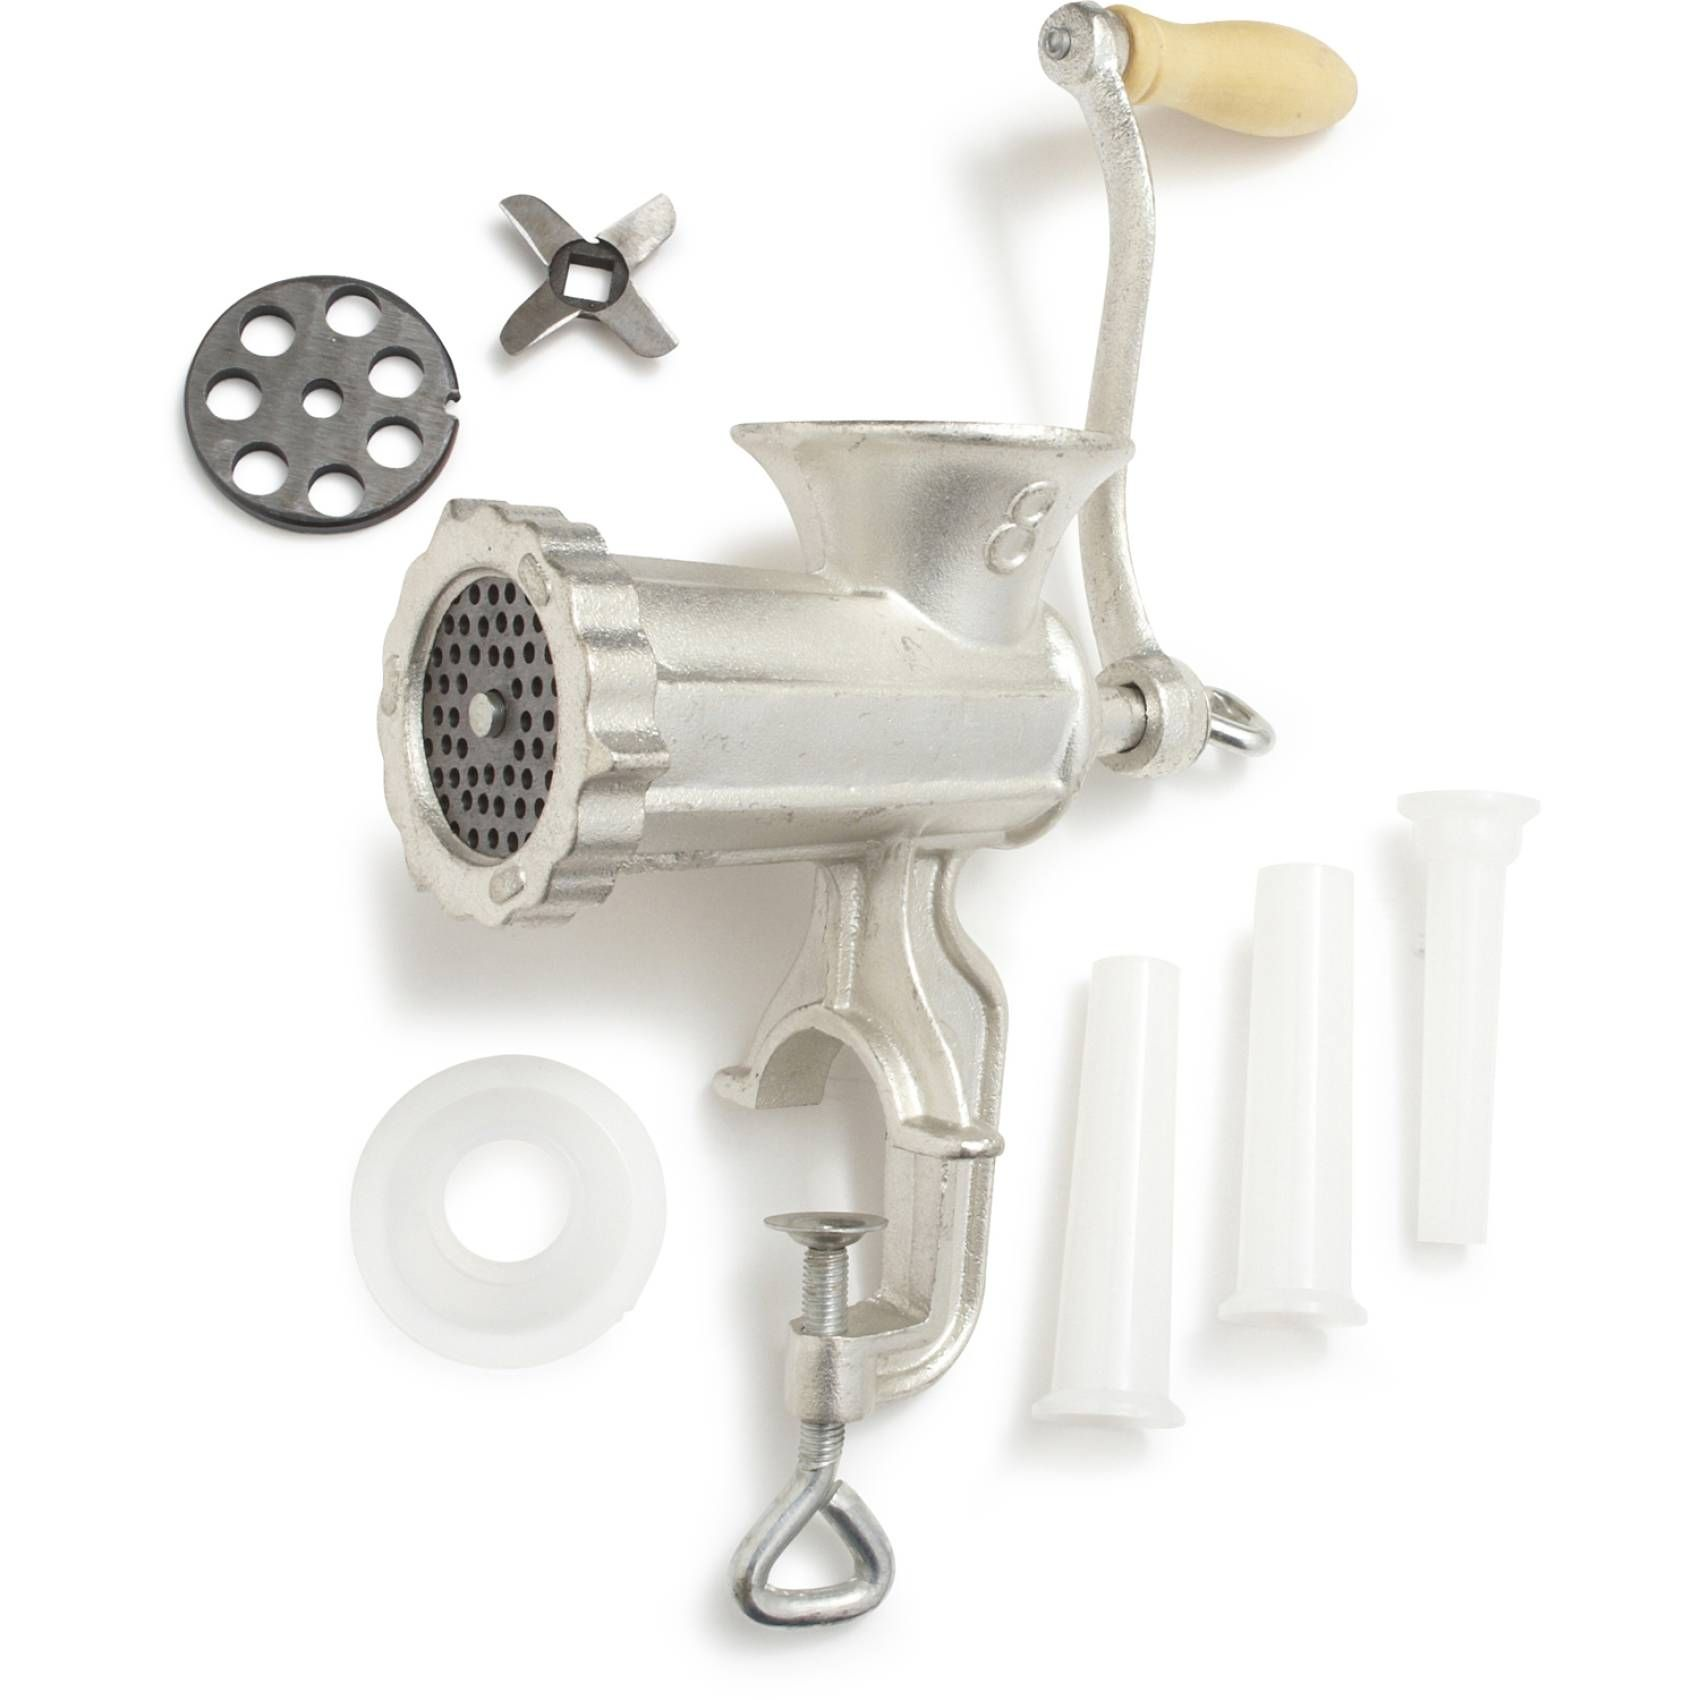 Cucina Pro Meat Grinder With Clamp Cucina Pro Meat Grinder With Clamp Sur La Table Kitchen Decor